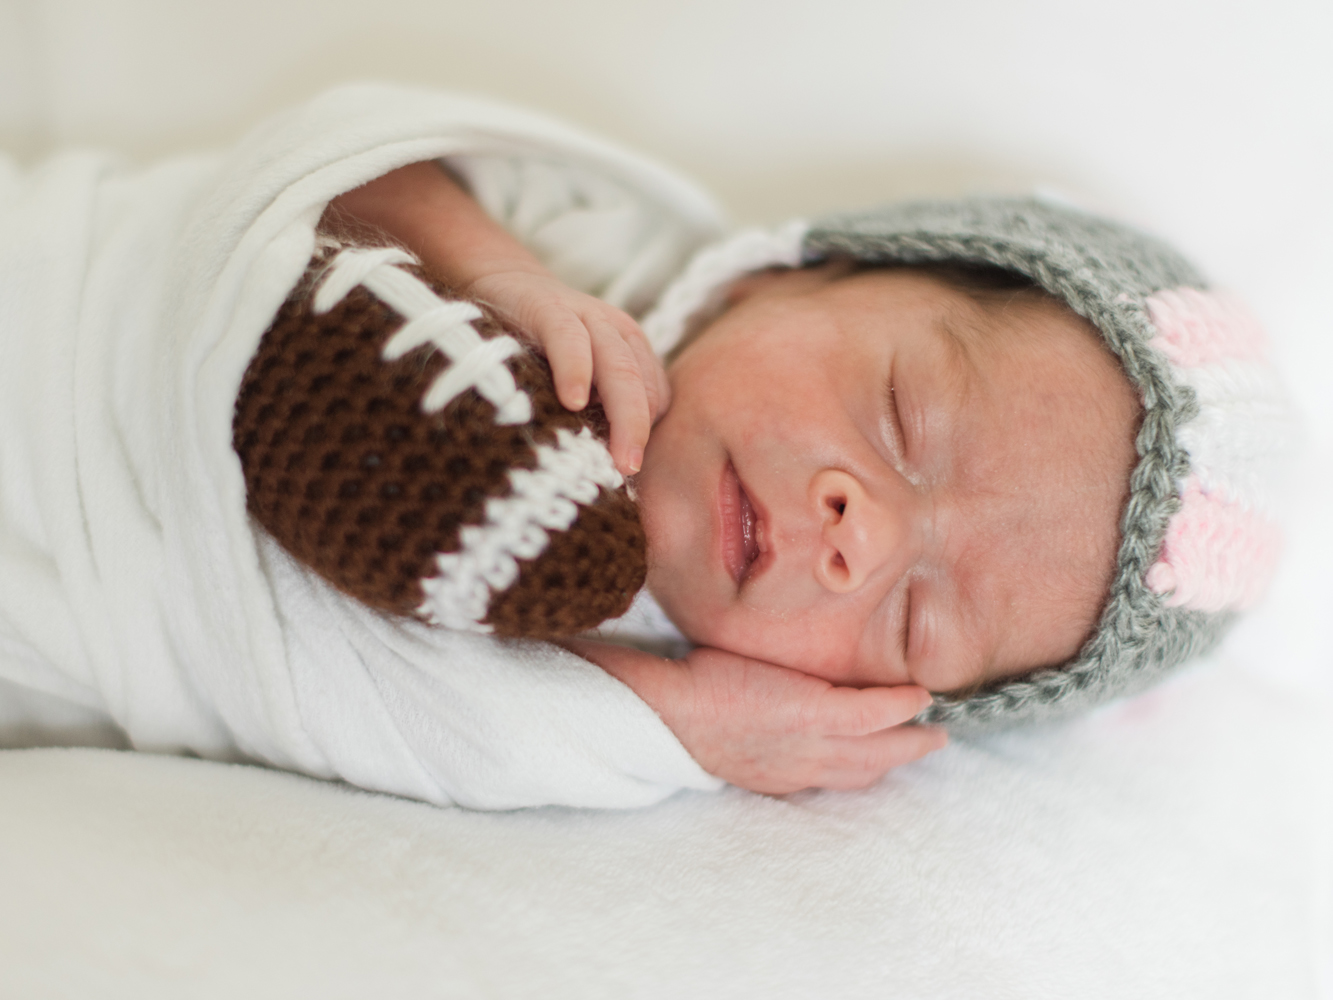 Baby in the NICU wearing a crochet football helmet.